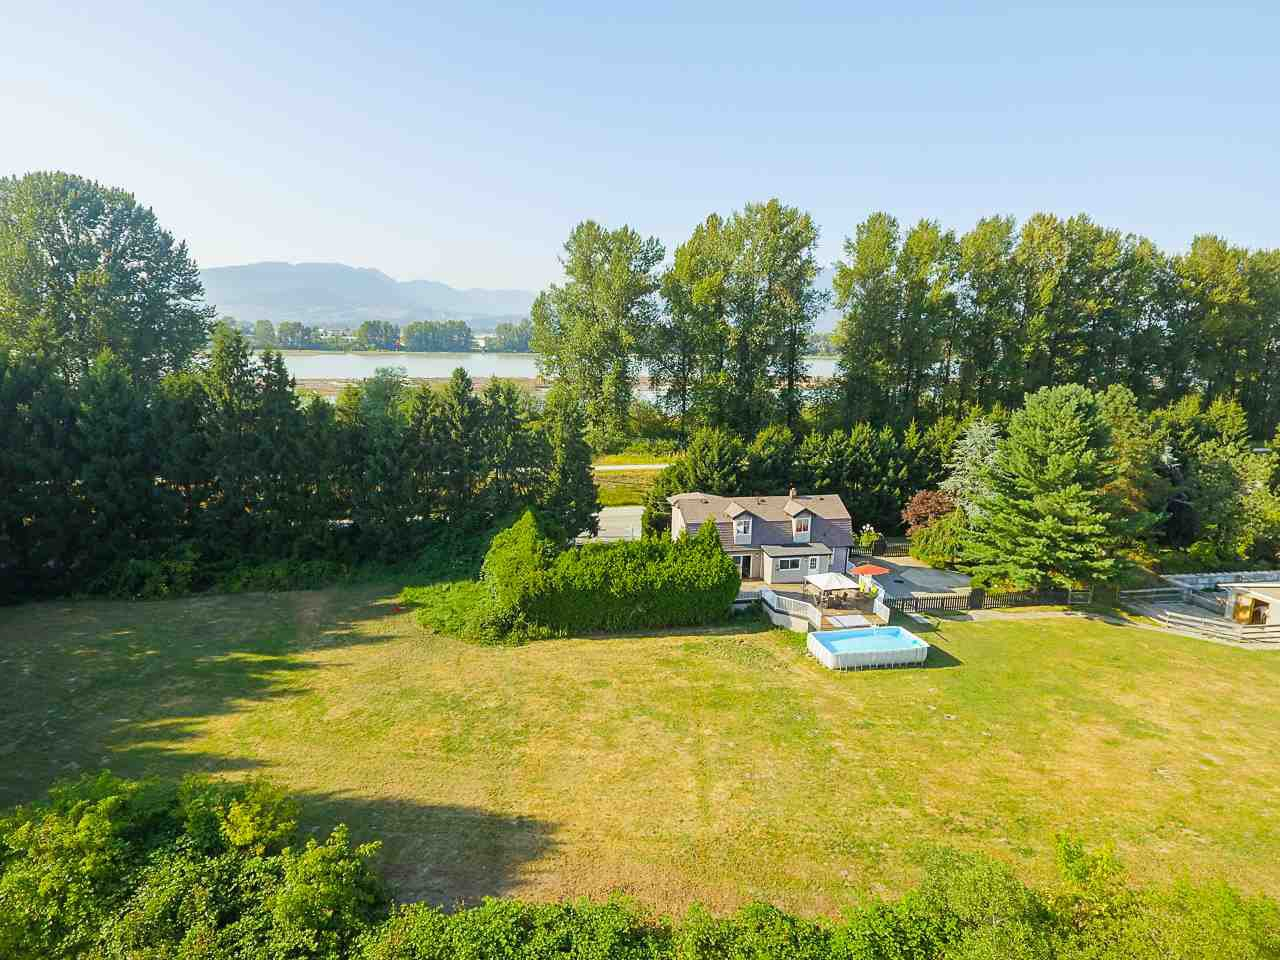 Photo 3: Photos: 17236 KENNEDY Road in Pitt Meadows: West Meadows House for sale : MLS®# R2395279